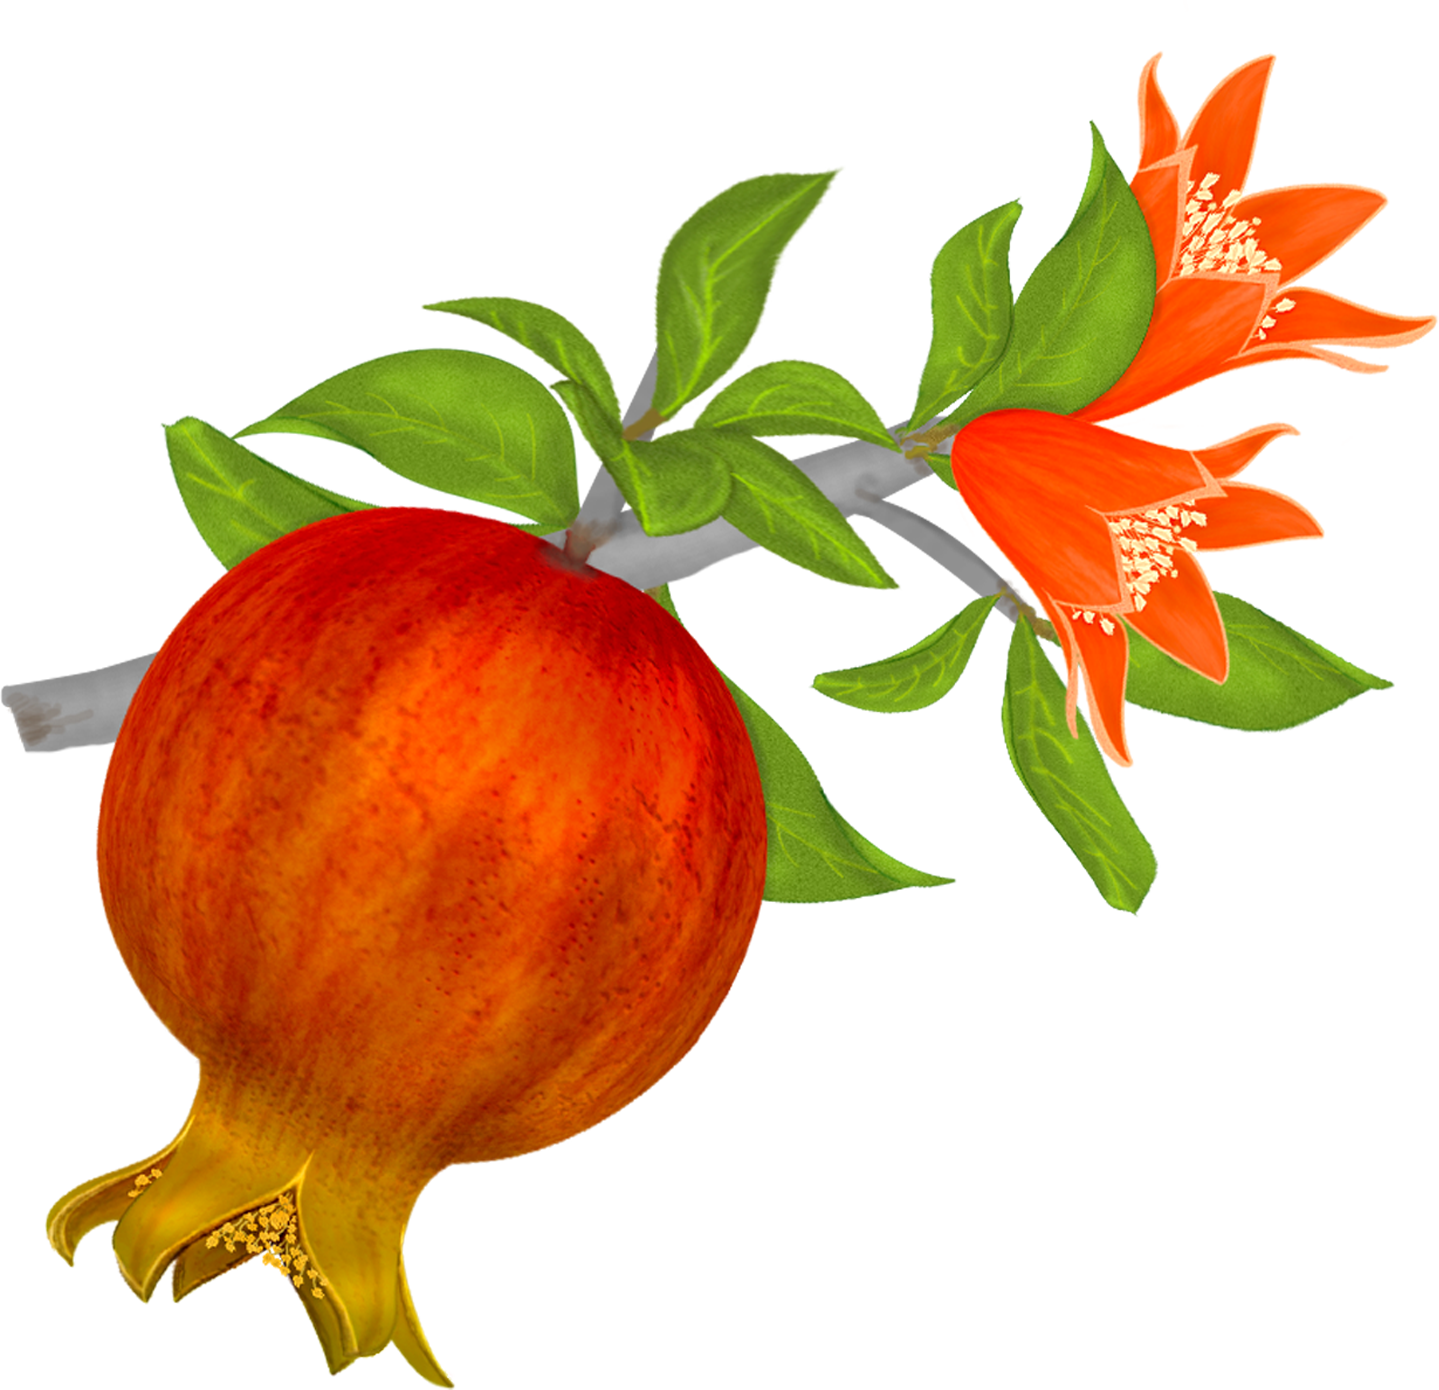 High Resolution Pomegranate Png Clipart image #27843